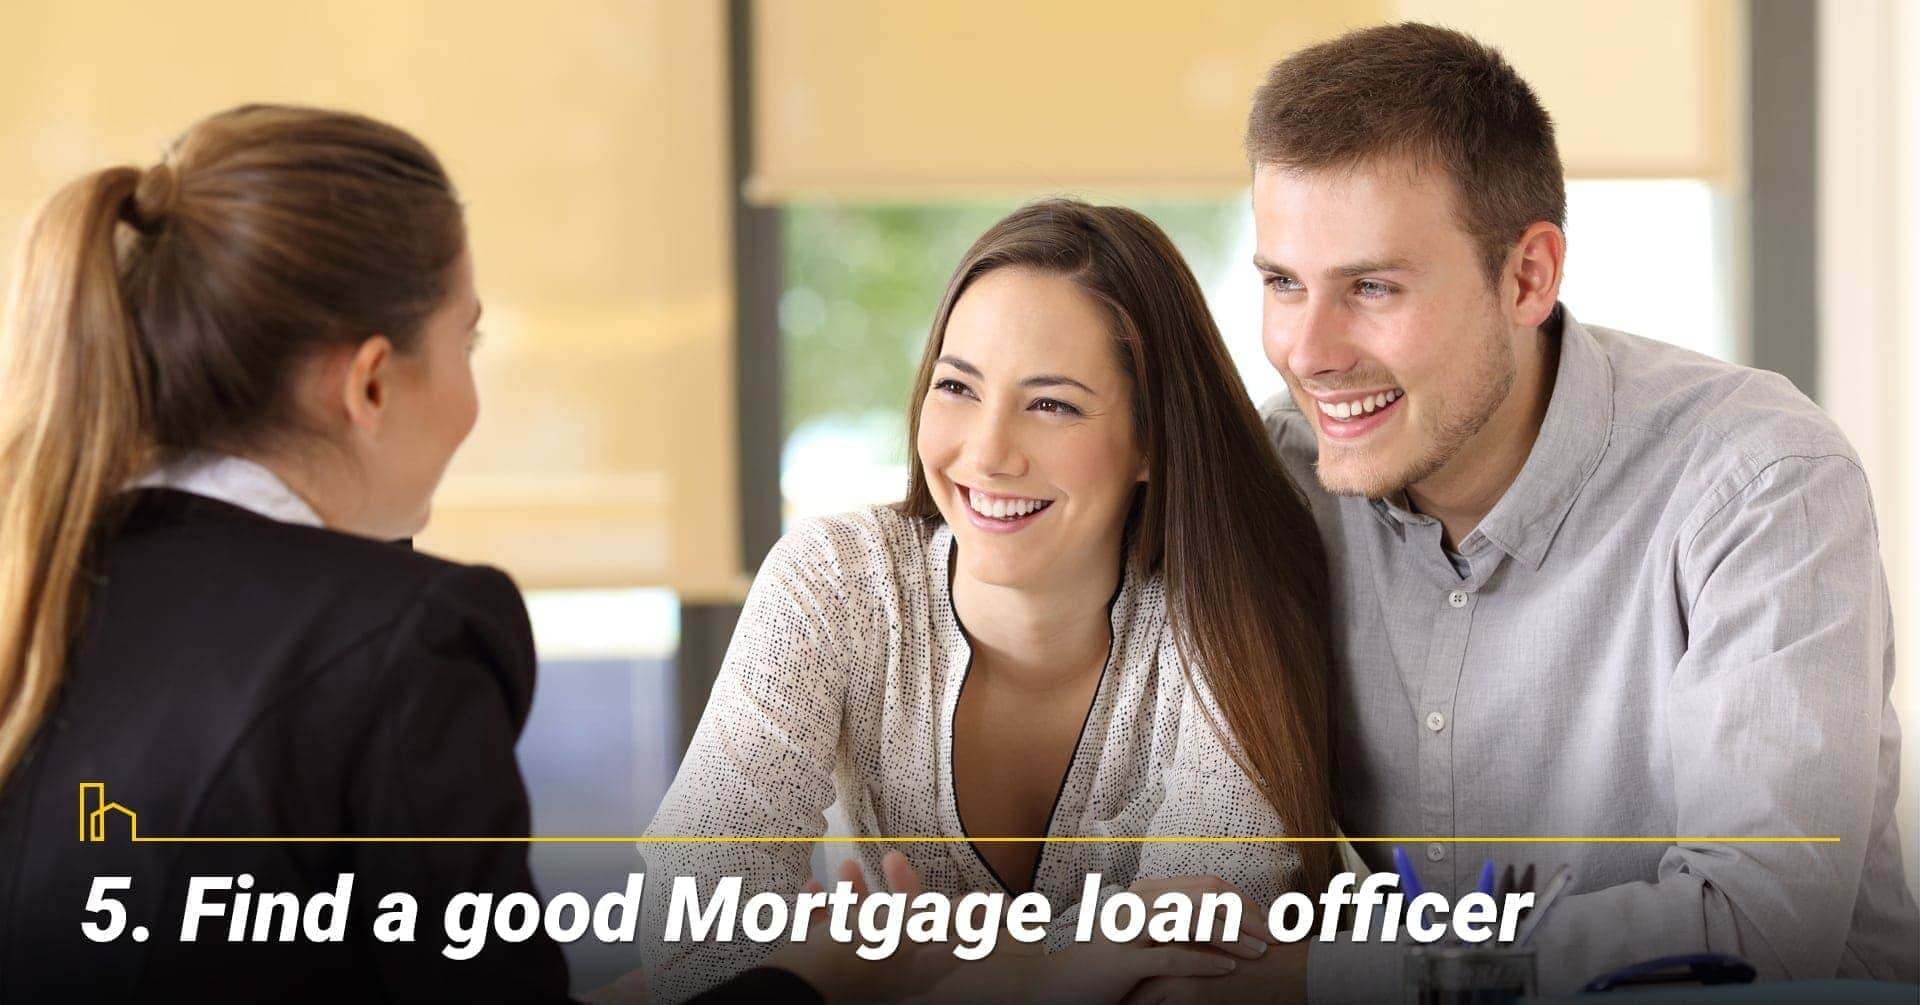 Find a good Mortgage loan officer, a good Mortgage loan officer is important